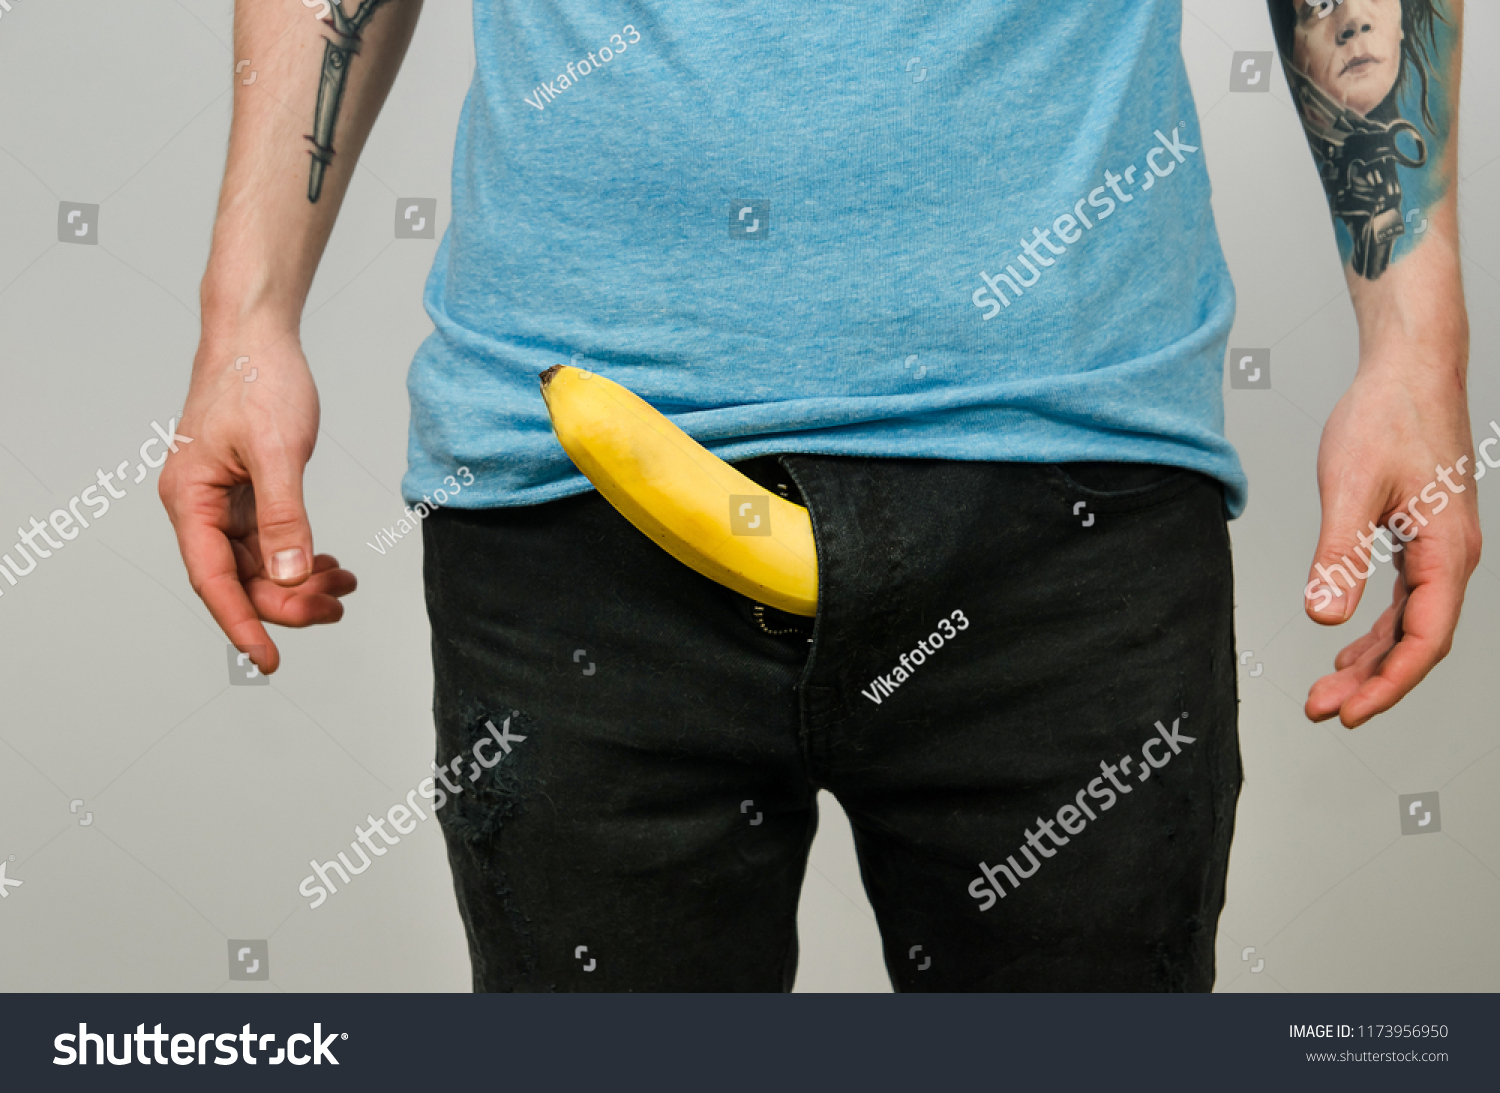 Have penis out of pants t shirt entertaining question